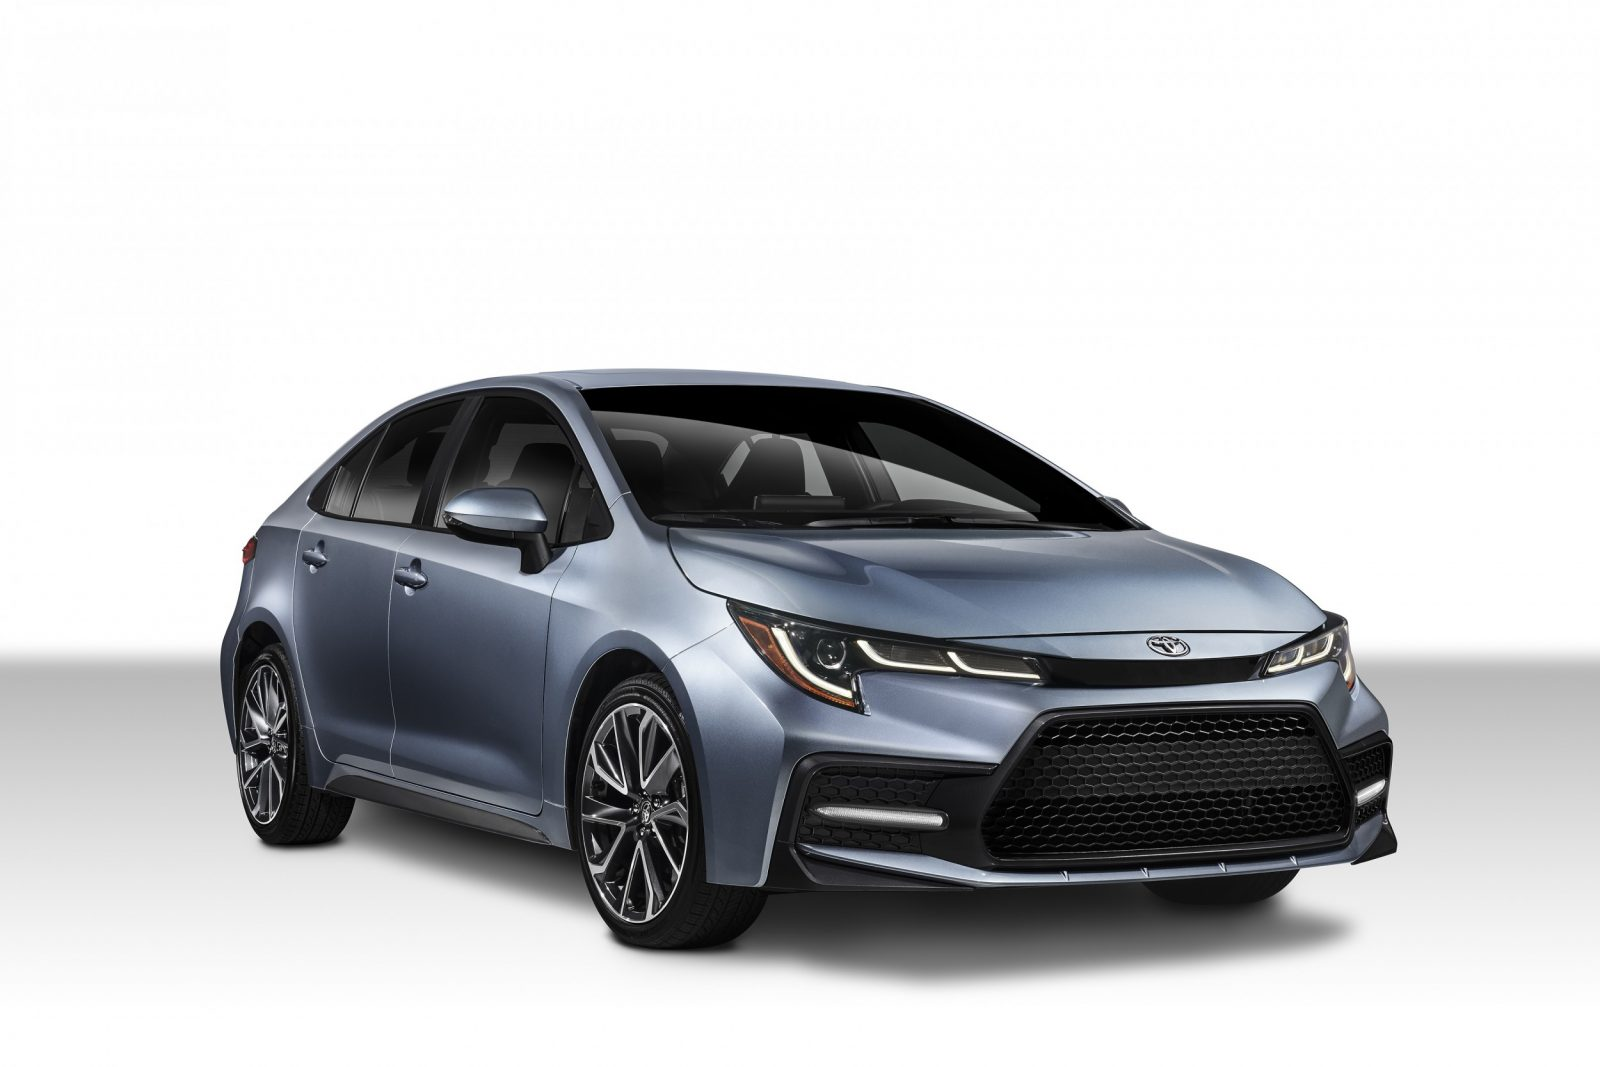 Toyota Goes All In With 2020 Corolla, Promises To Revamp